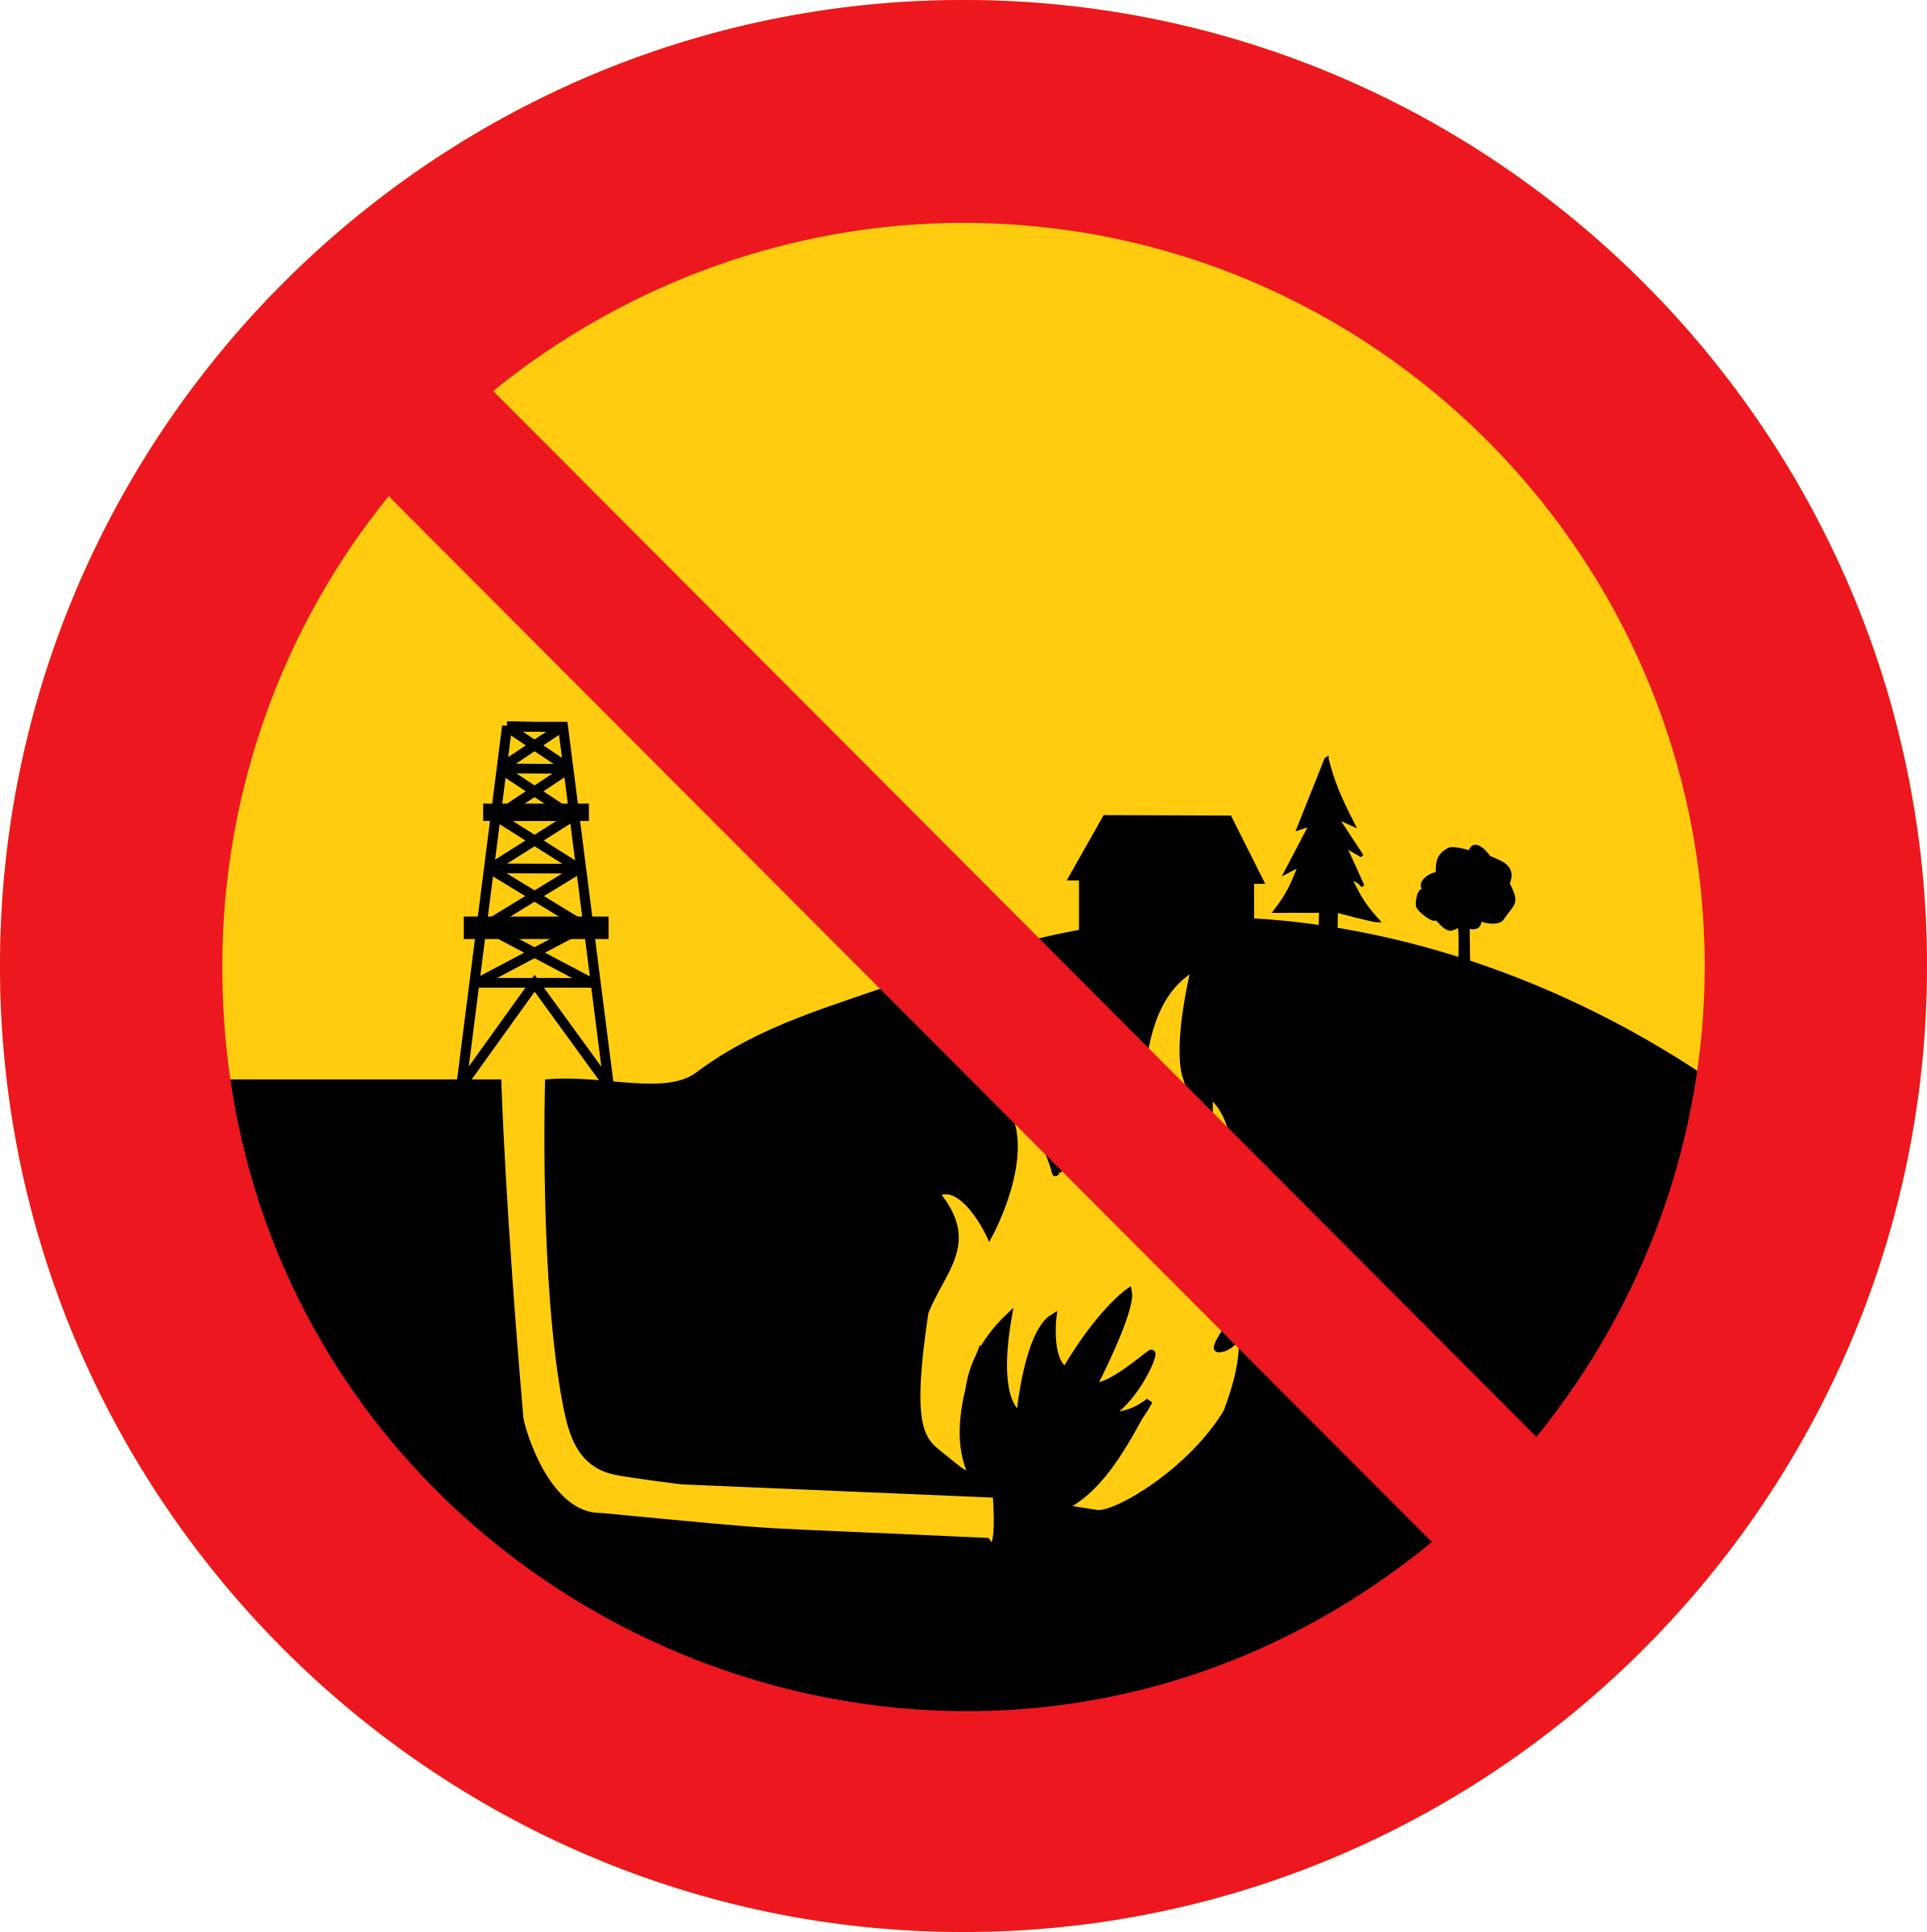 No shale gas by dominiquechappard